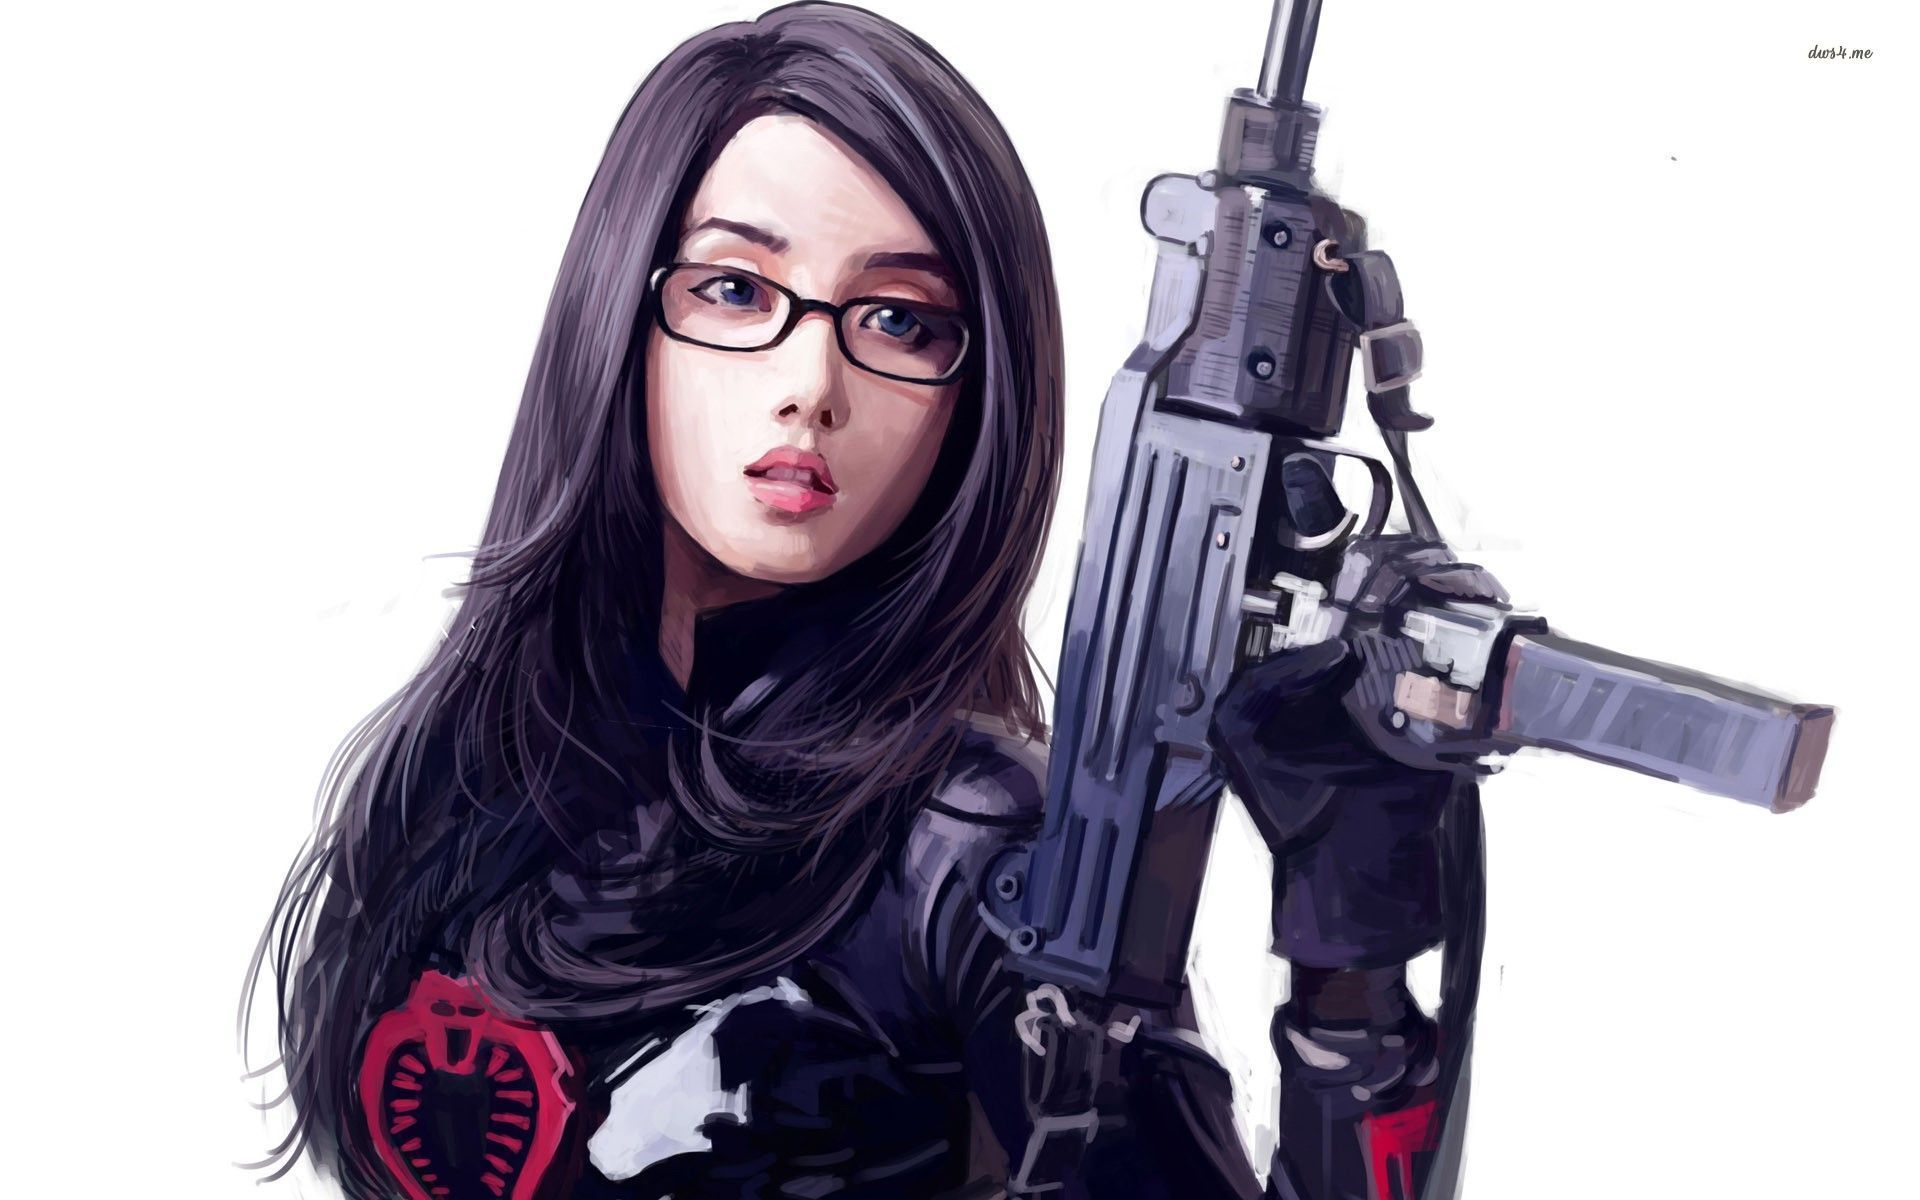 Nerdy girl with a rifle wallpaper Ideas for the House